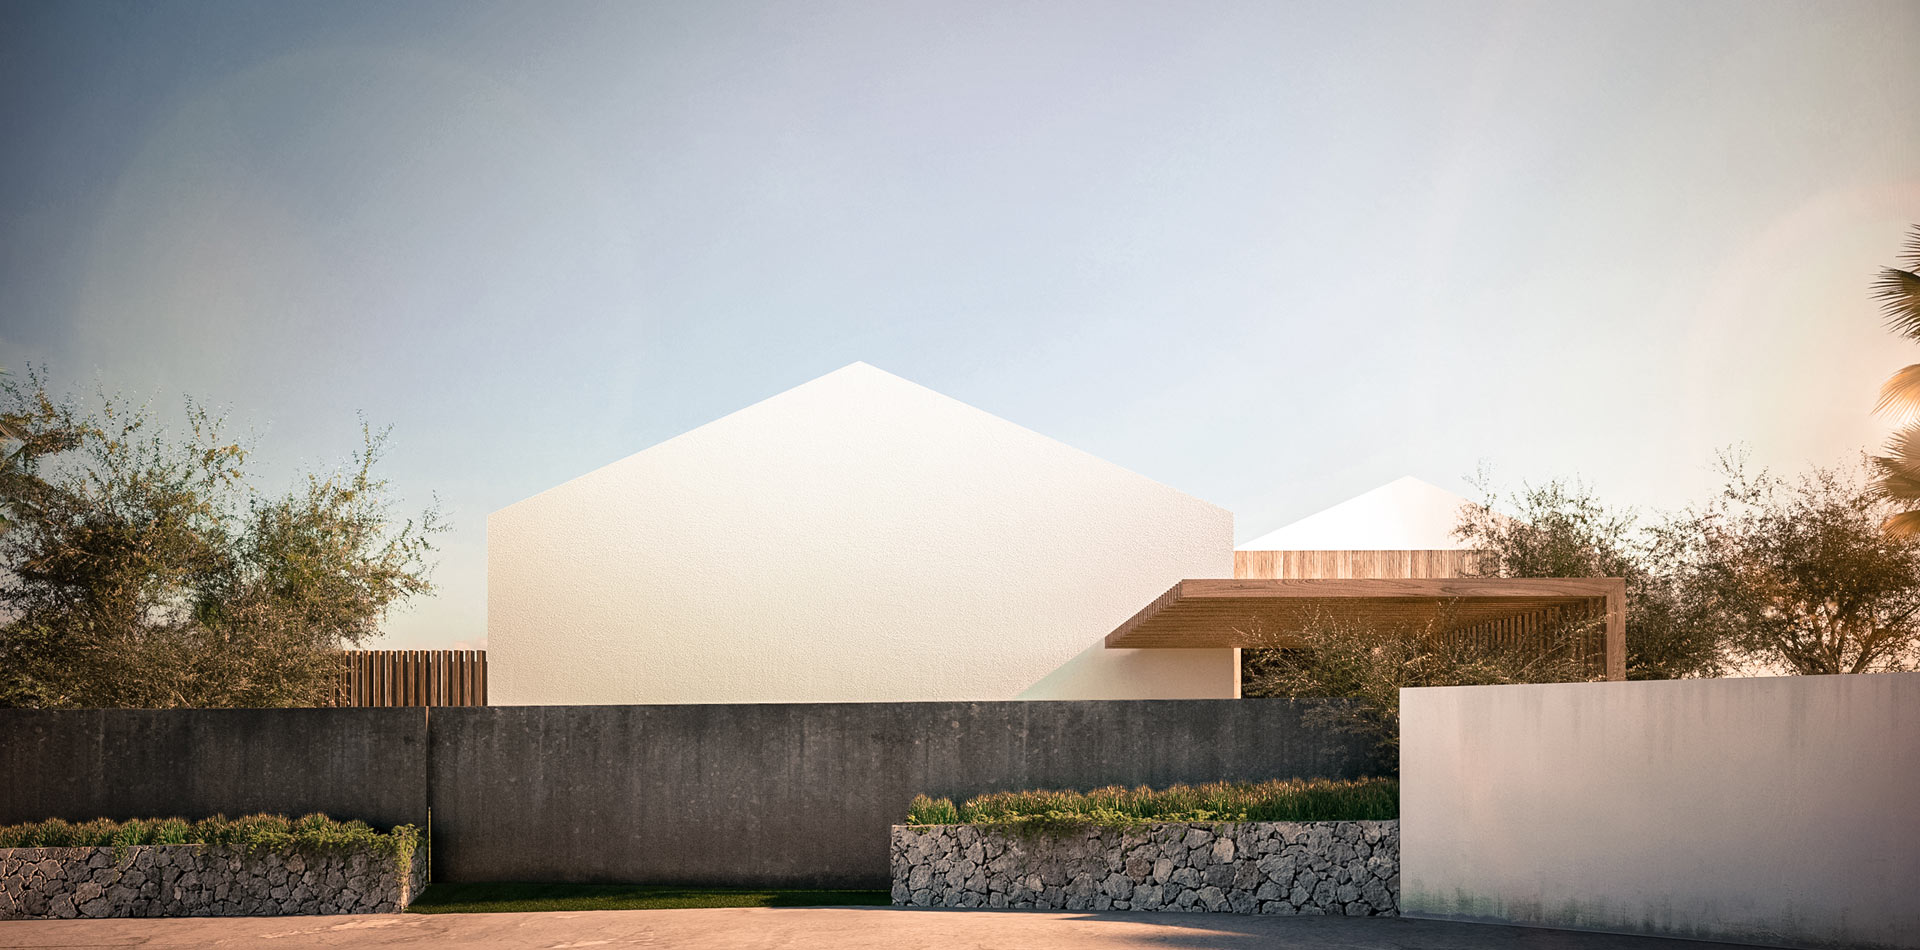 rior Design Vray Reunion Island Tropical Luxury Modern PNTV Entrance